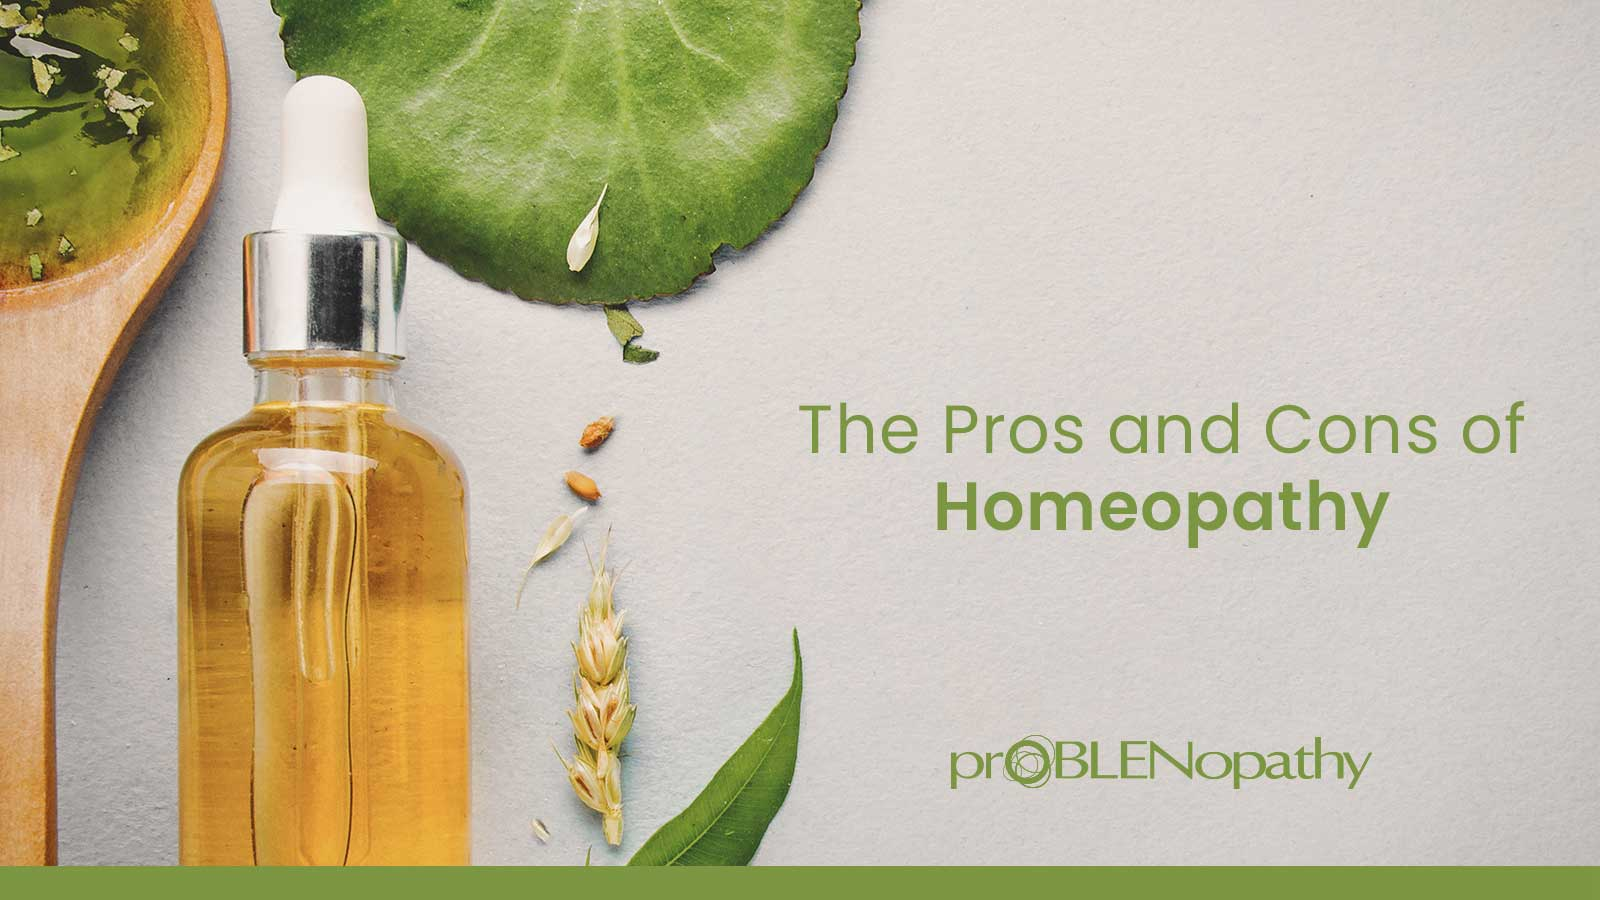 is there an advantage to homeopathy